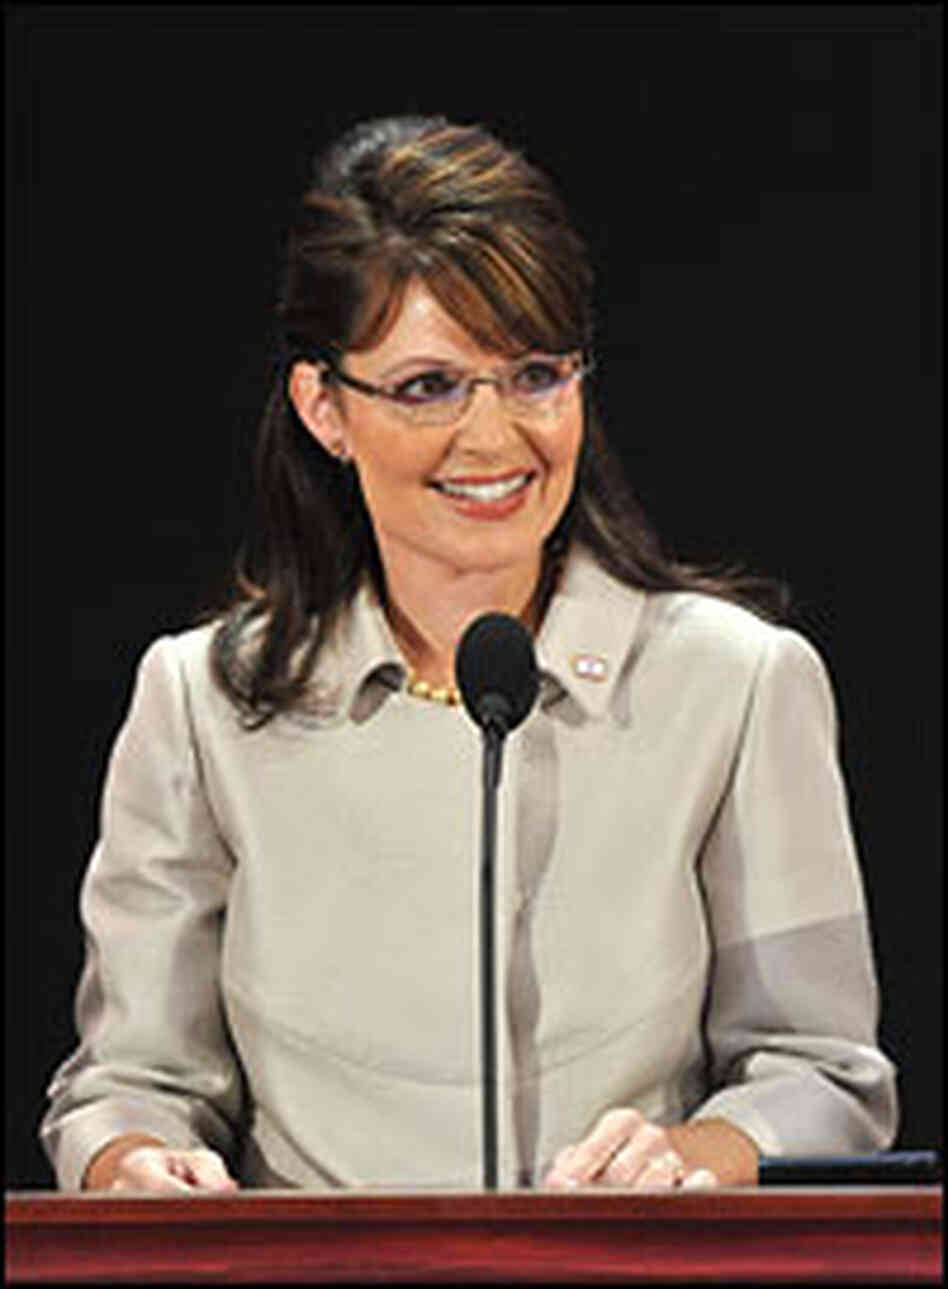 Vice presidential nominee Sarah Palin addresses the Republican National Convention in St. Paul, Minn